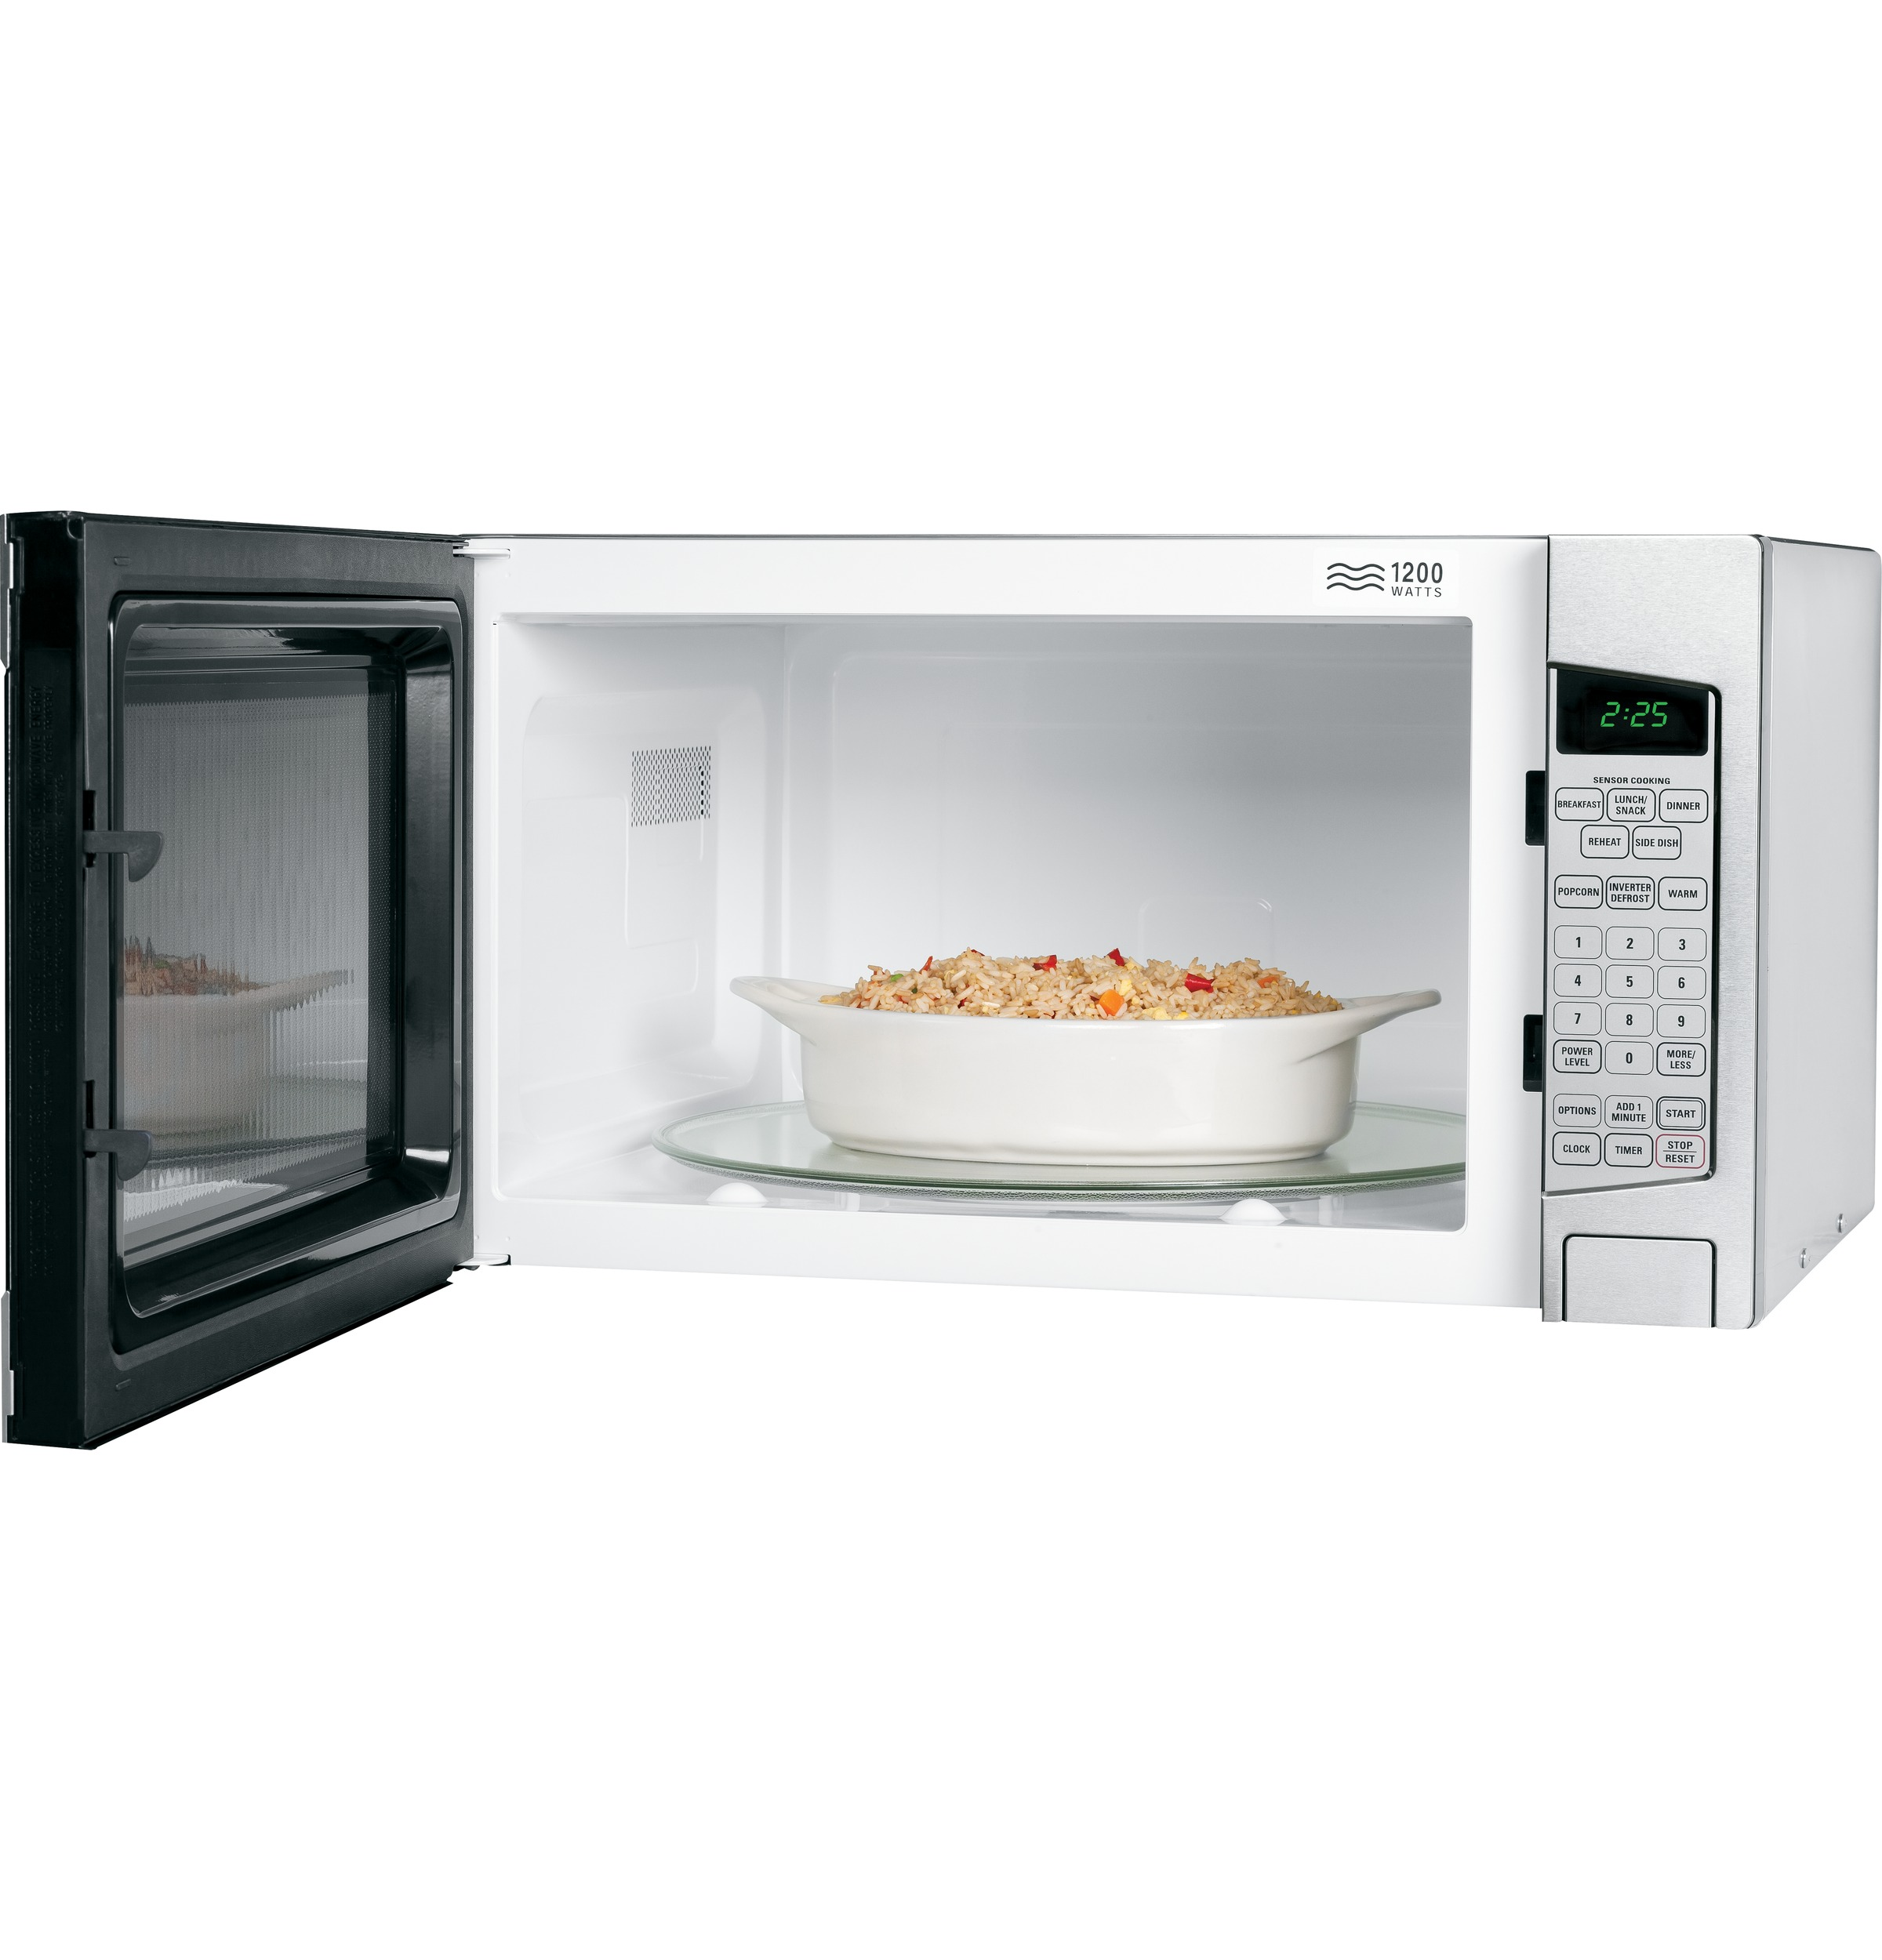 Countertop Microwave Dimensions : Countertop Microwave Dimensions